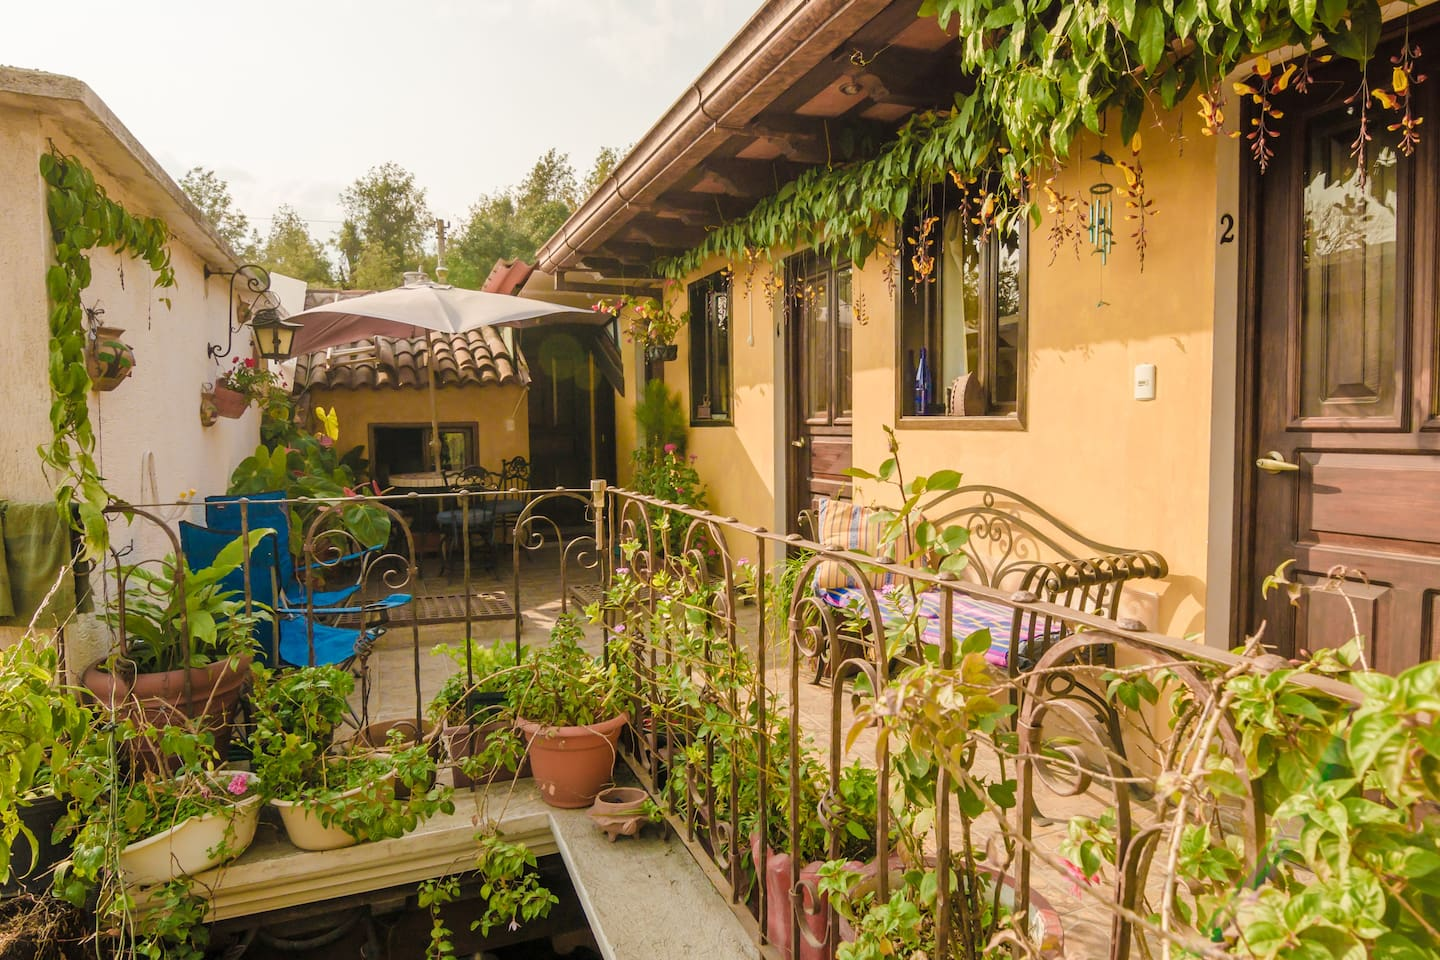 Welcome in our cozy, typical Guatemalan house.